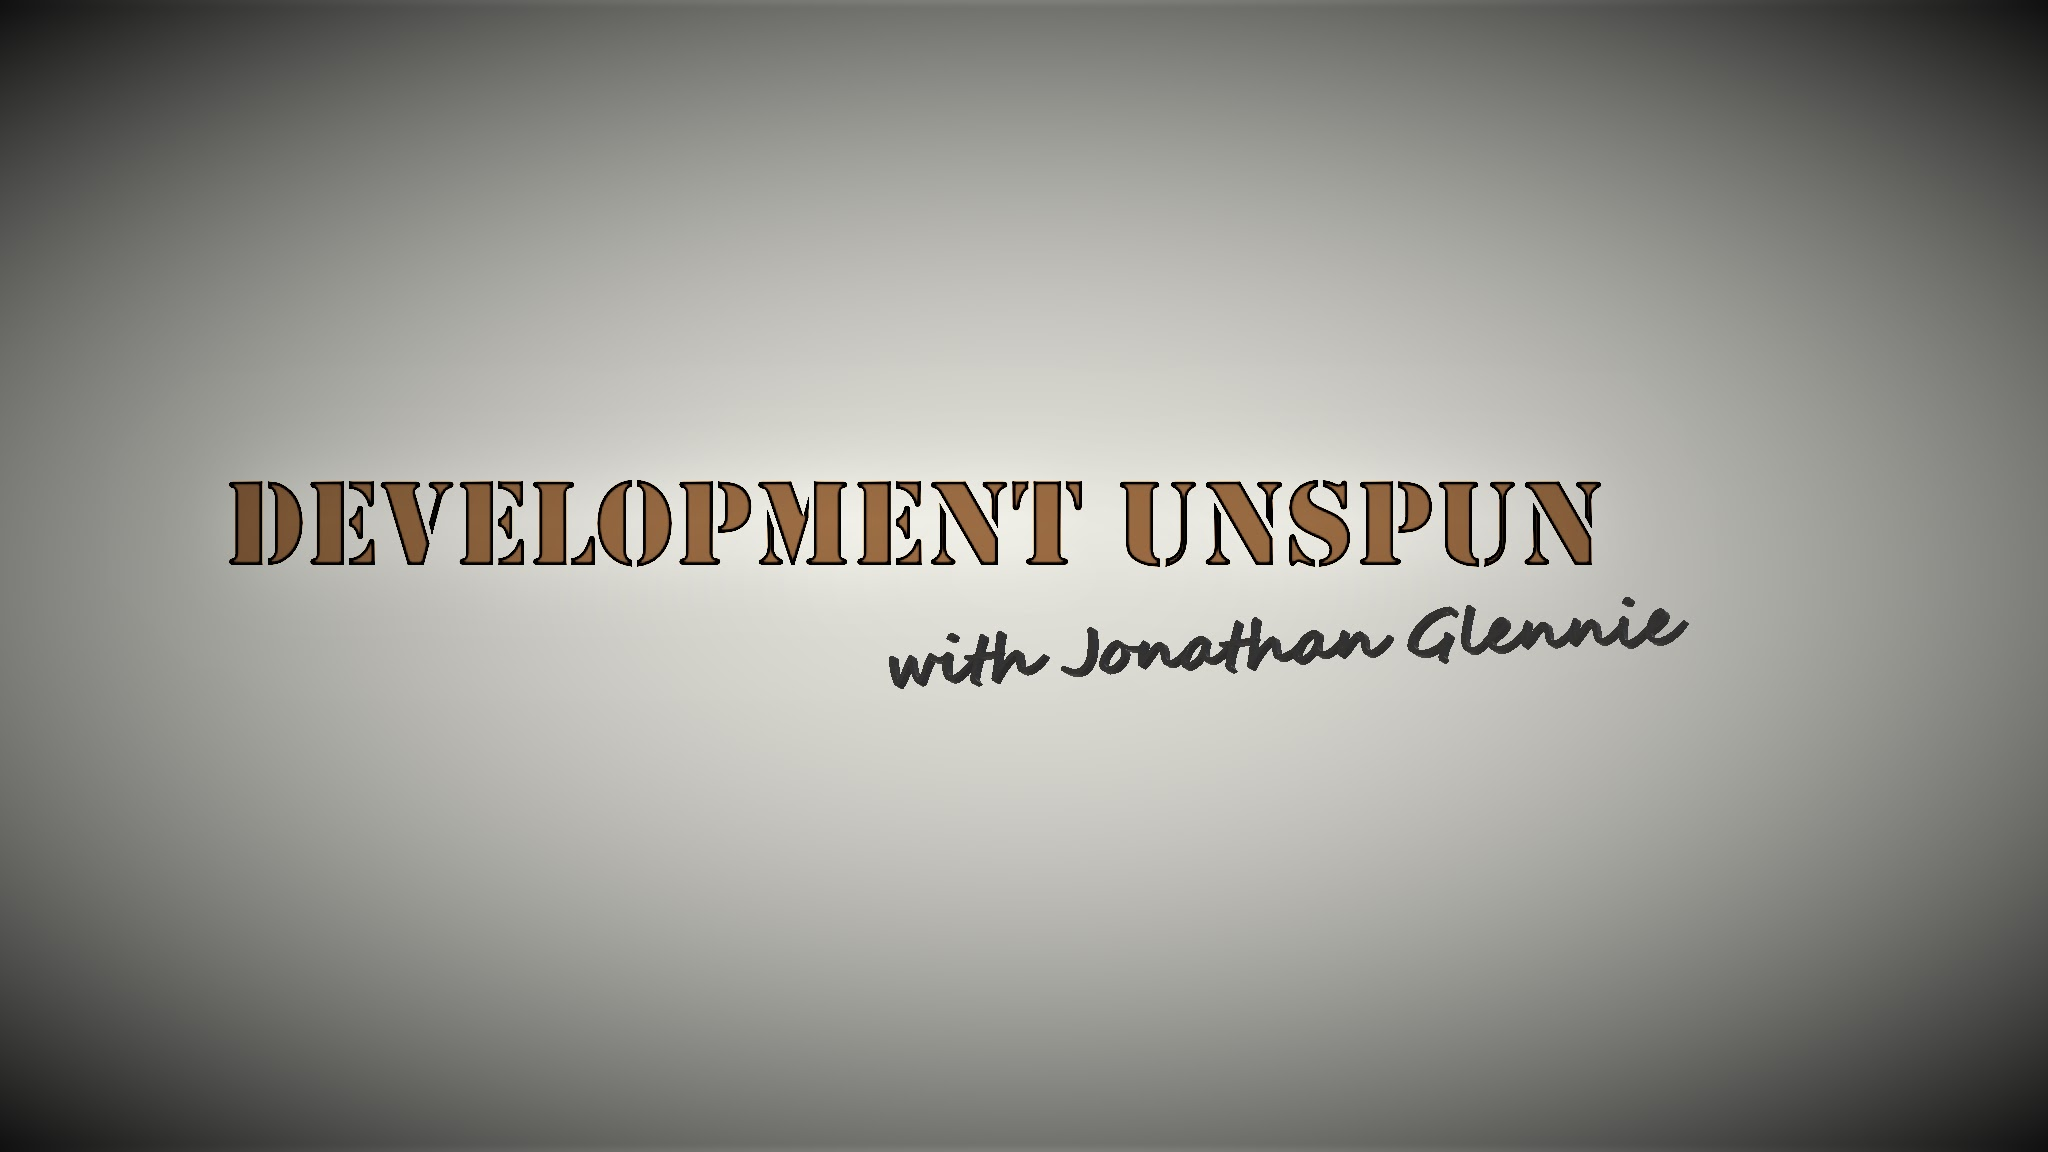 Development Unspun